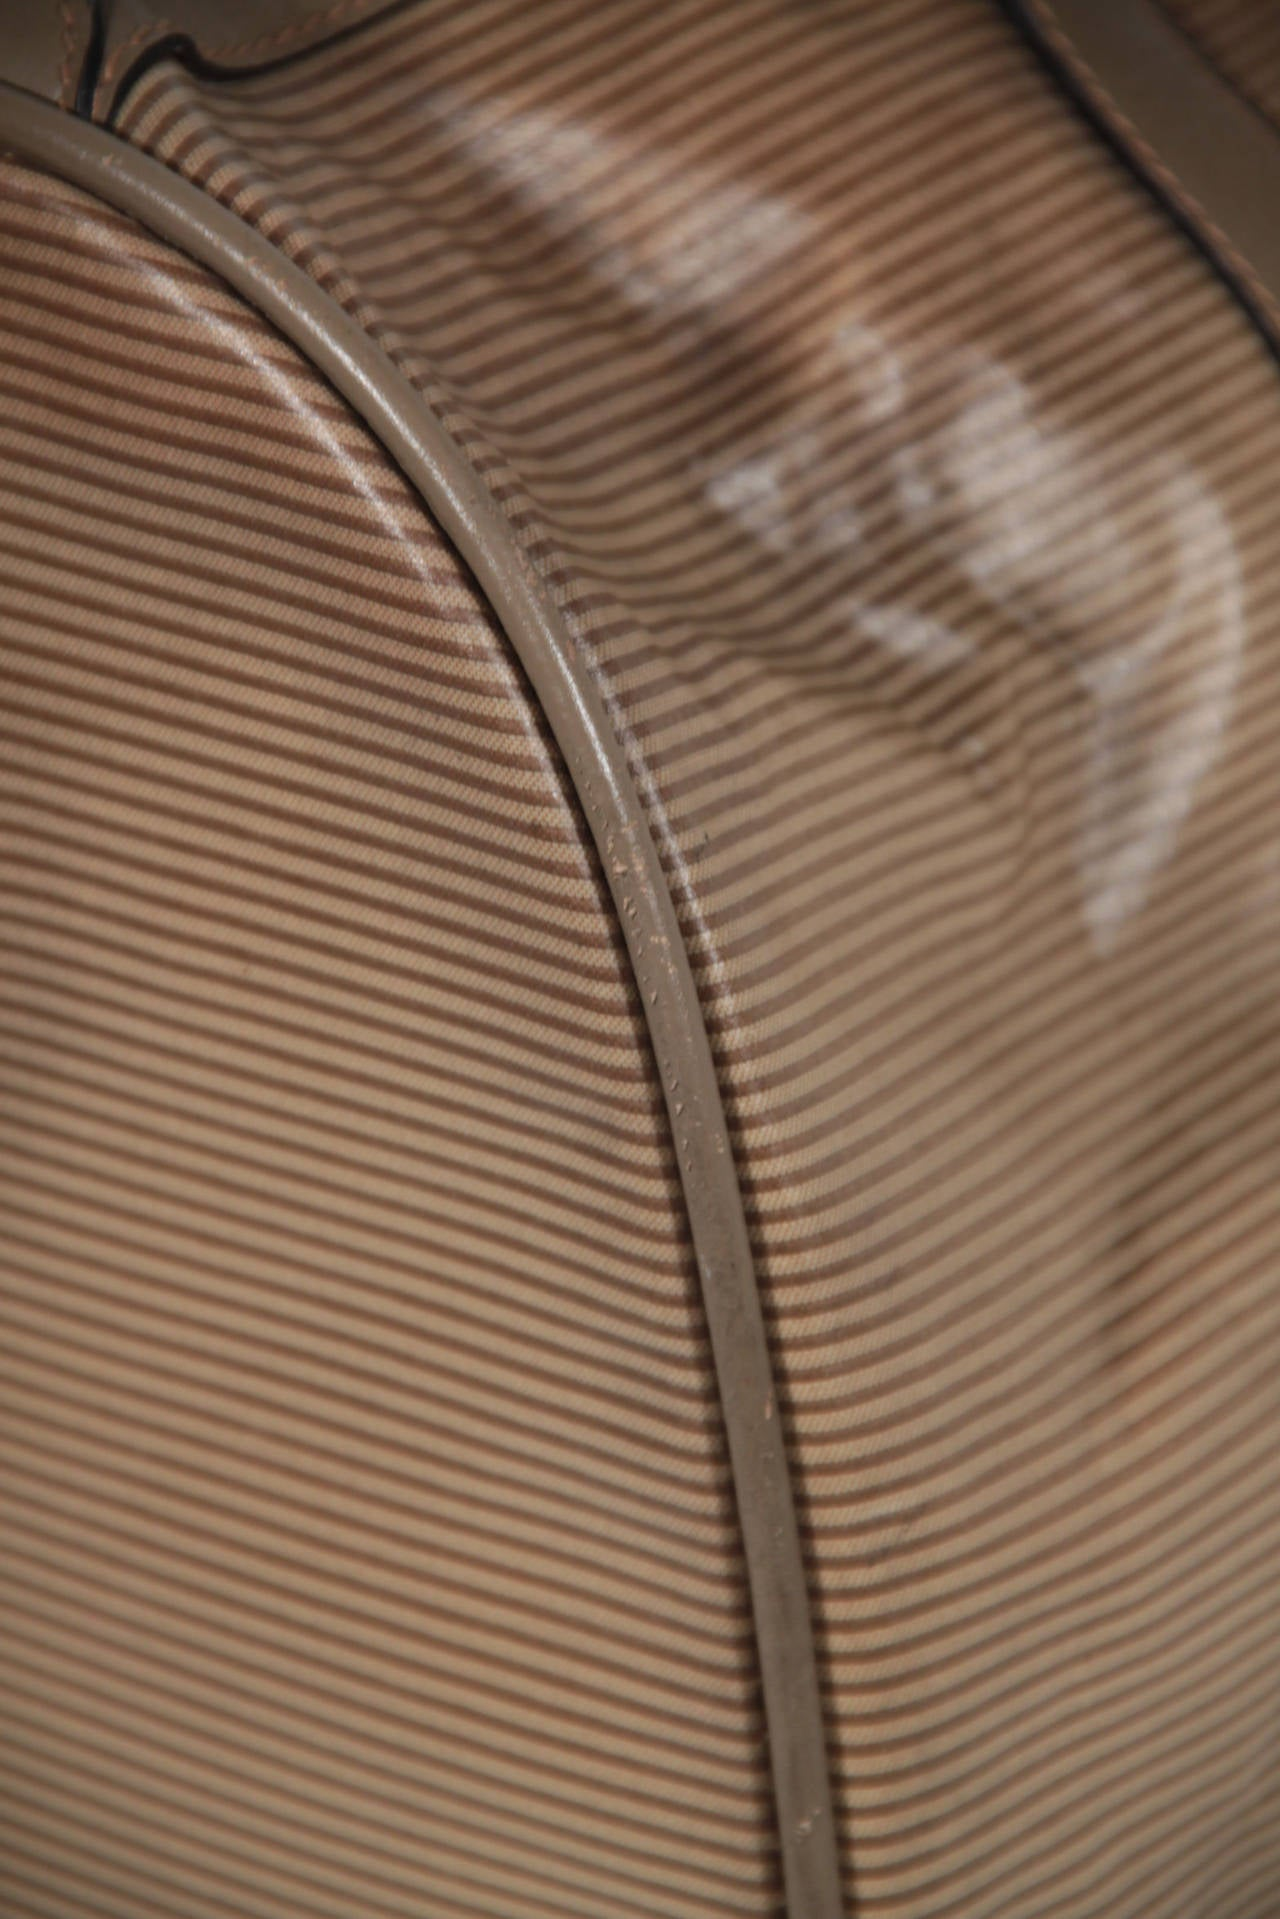 yves saint laurent tan striped vinyl canvas weekender overnight travel bag as56 for sale at 1stdibs